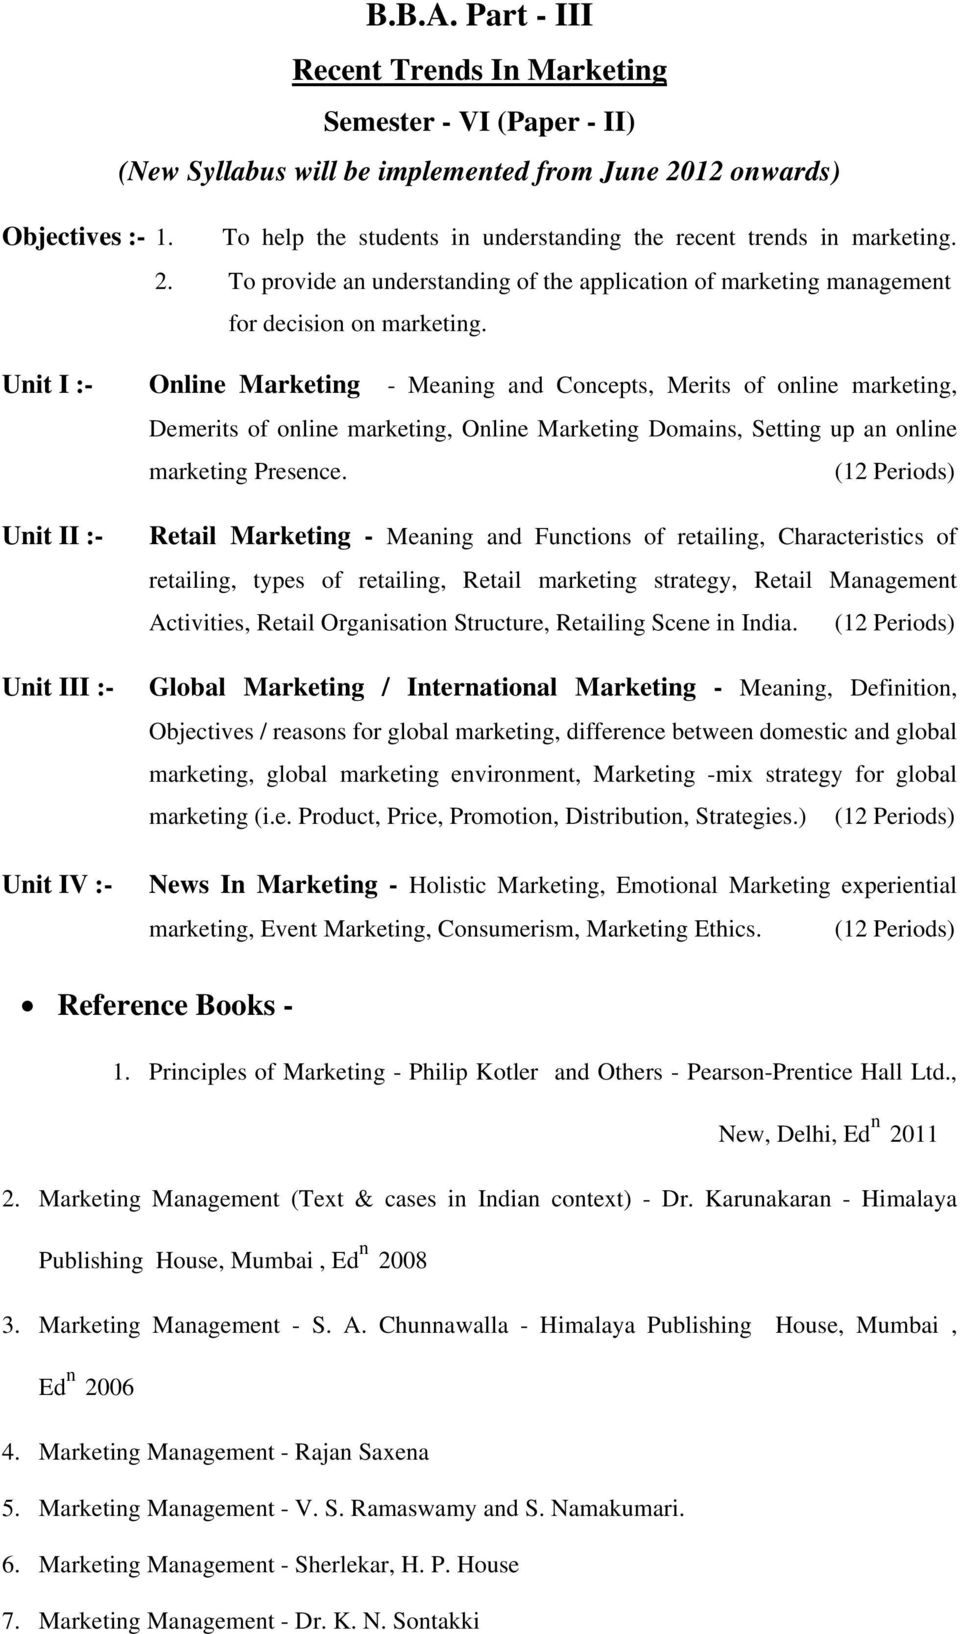 Unit I :- Online Marketing - Meaning and Concepts, Merits of online marketing, Demerits of online marketing, Online Marketing Domains, Setting up an online marketing Presence.